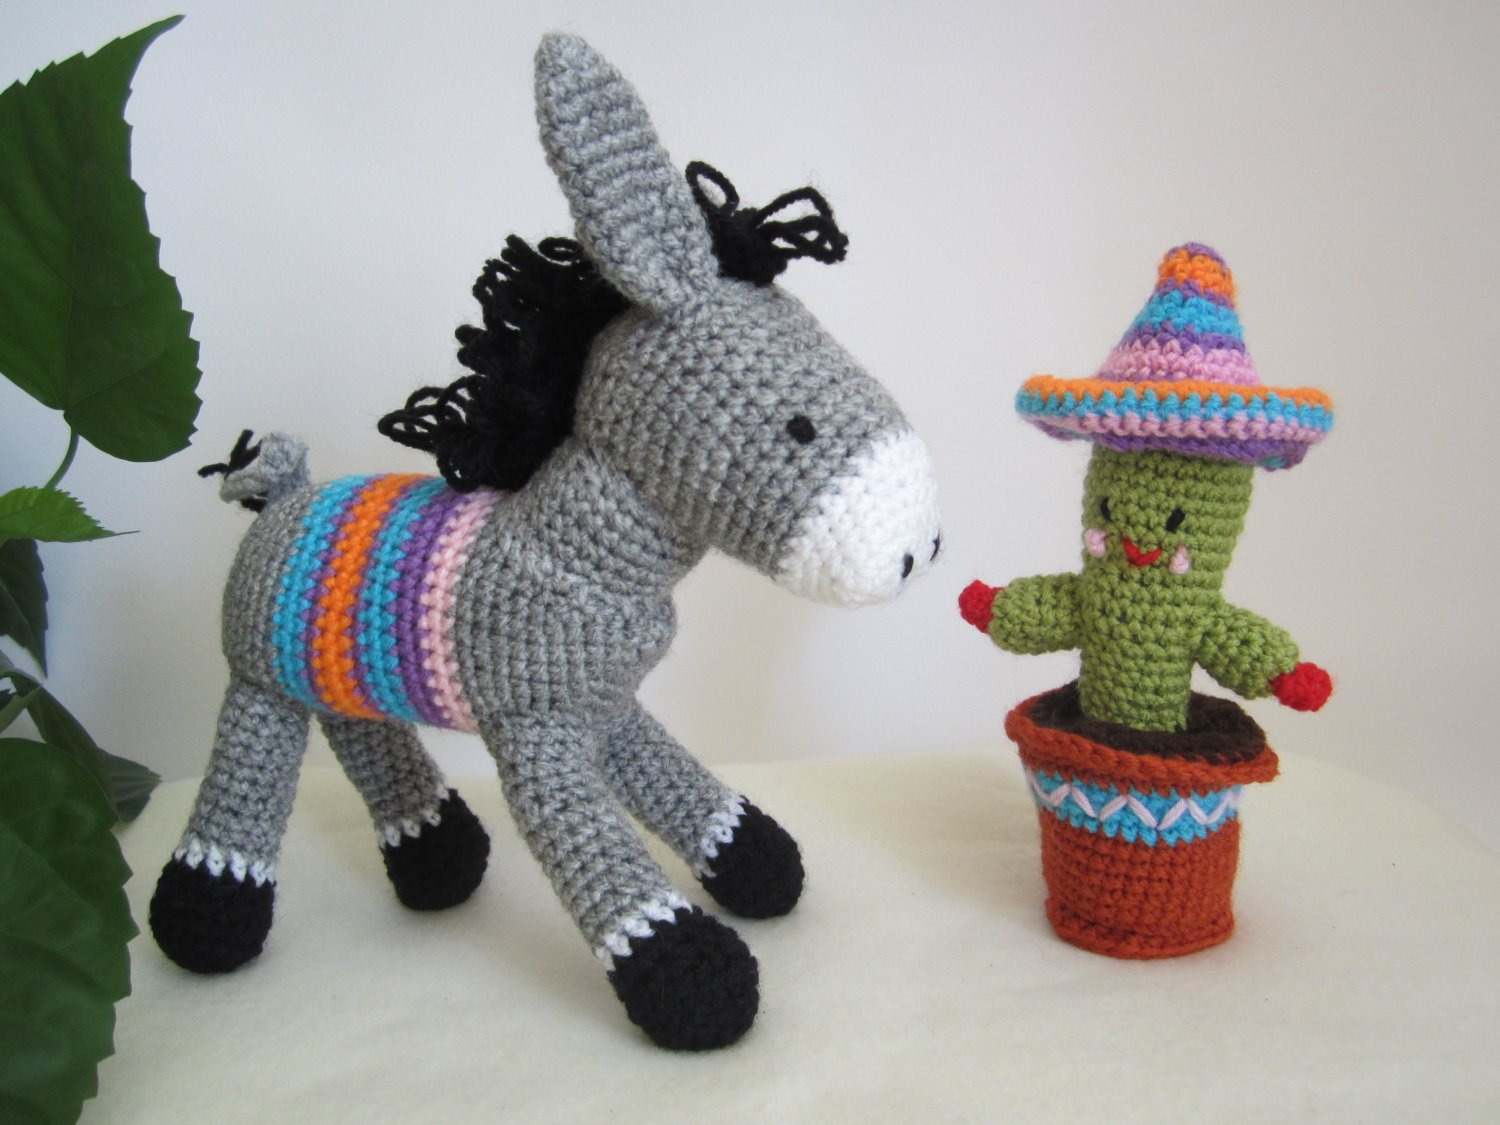 Set of crochet donkey and cactus